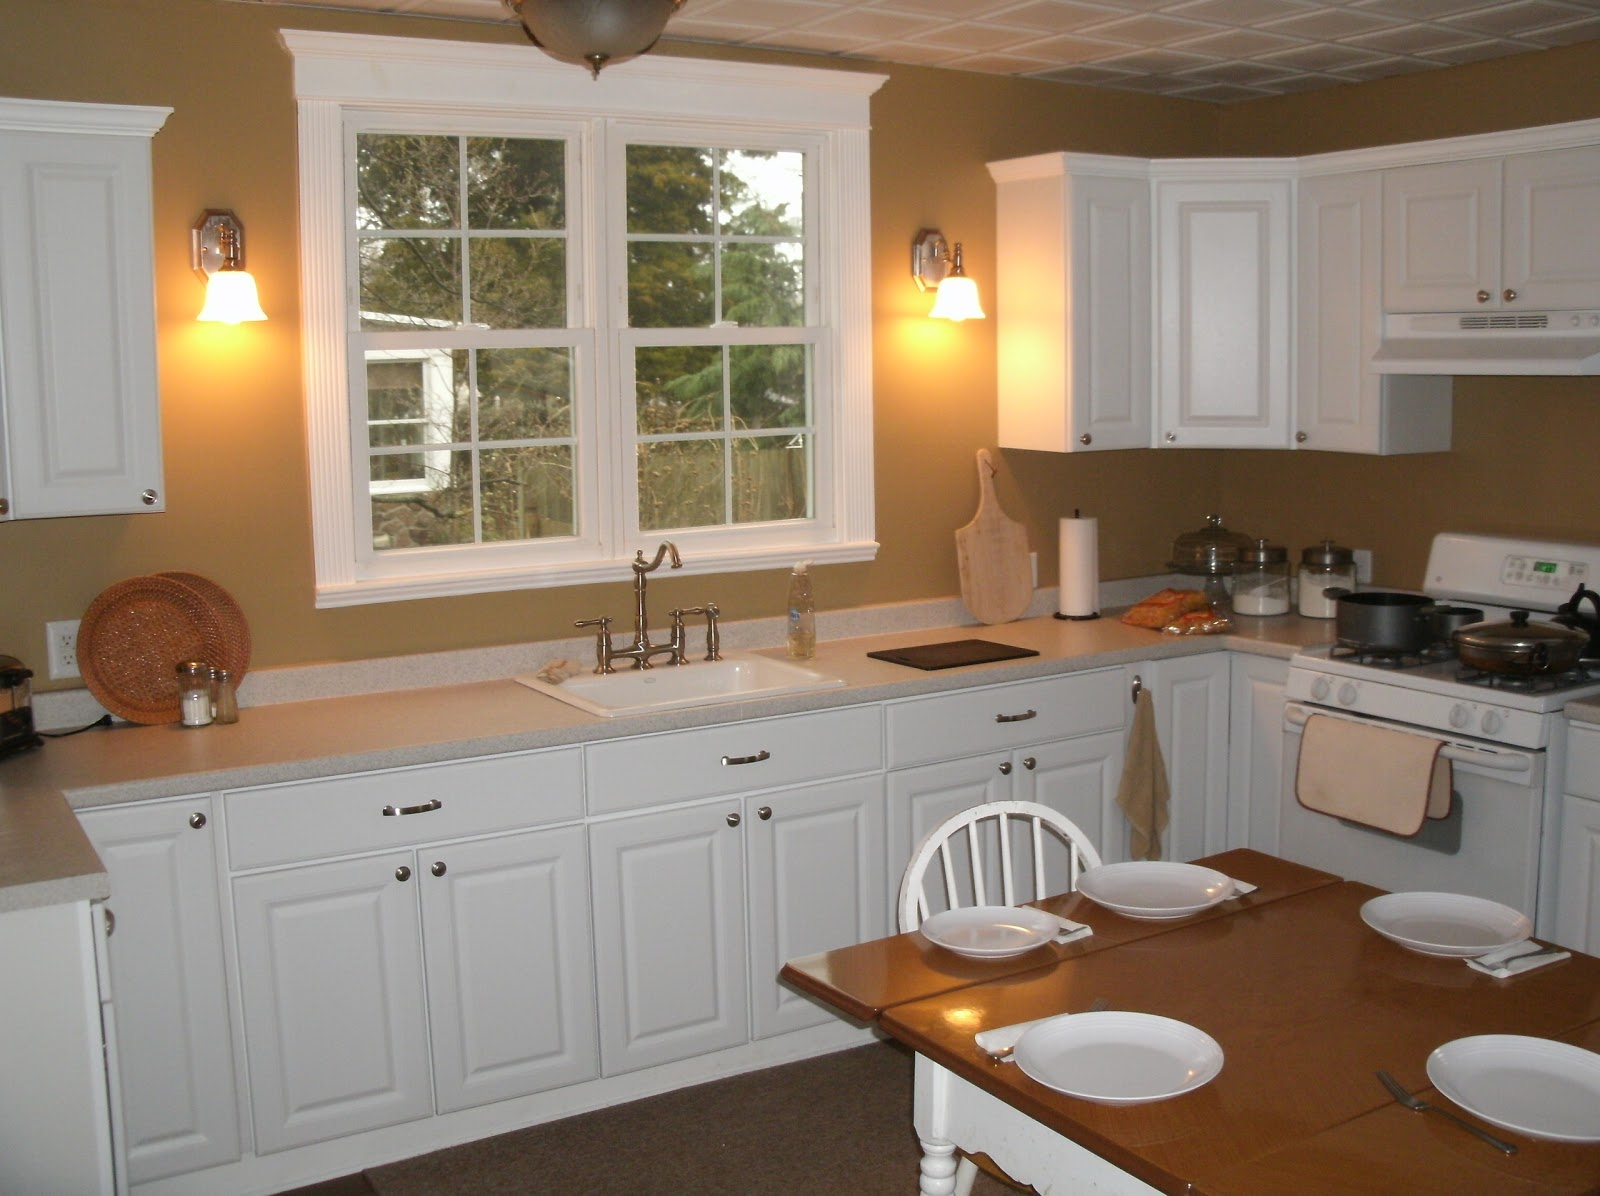 Home remodeling and improvements tips and how to 39 s for Home kitchen remodeling